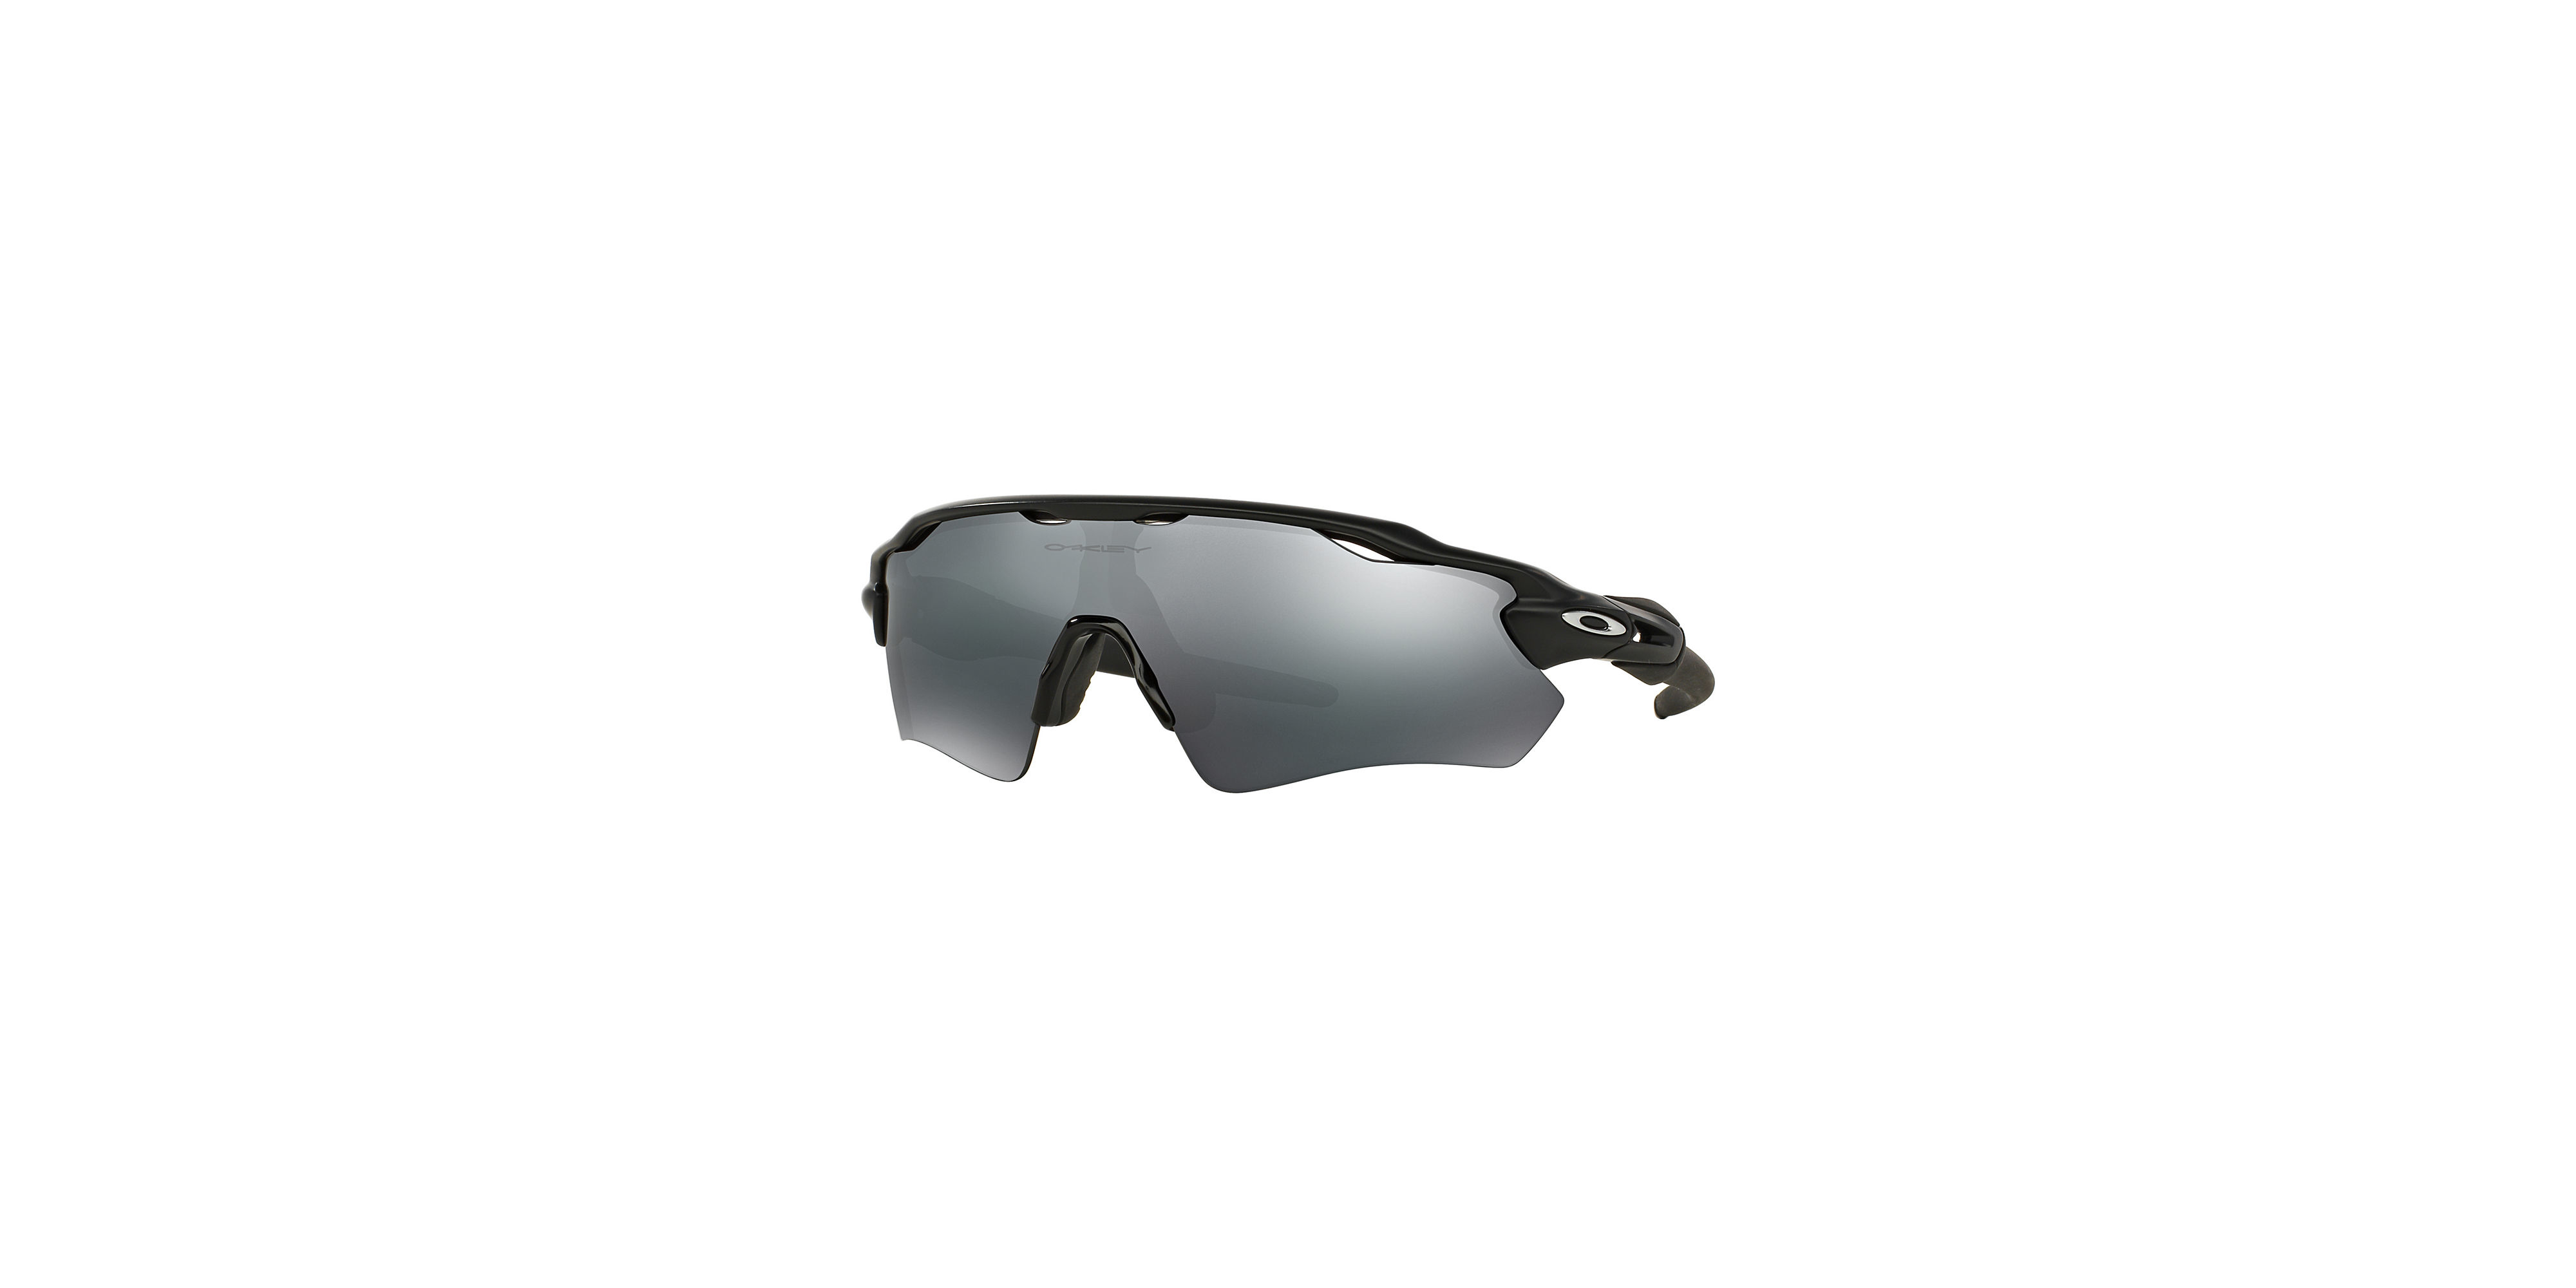 6409fc3f55 ... frame colorful lens 0974 48d20 f261d coupon code for oakley radar black  visor sunglasses 94b1c 9f938 reduced oakley radar range ...